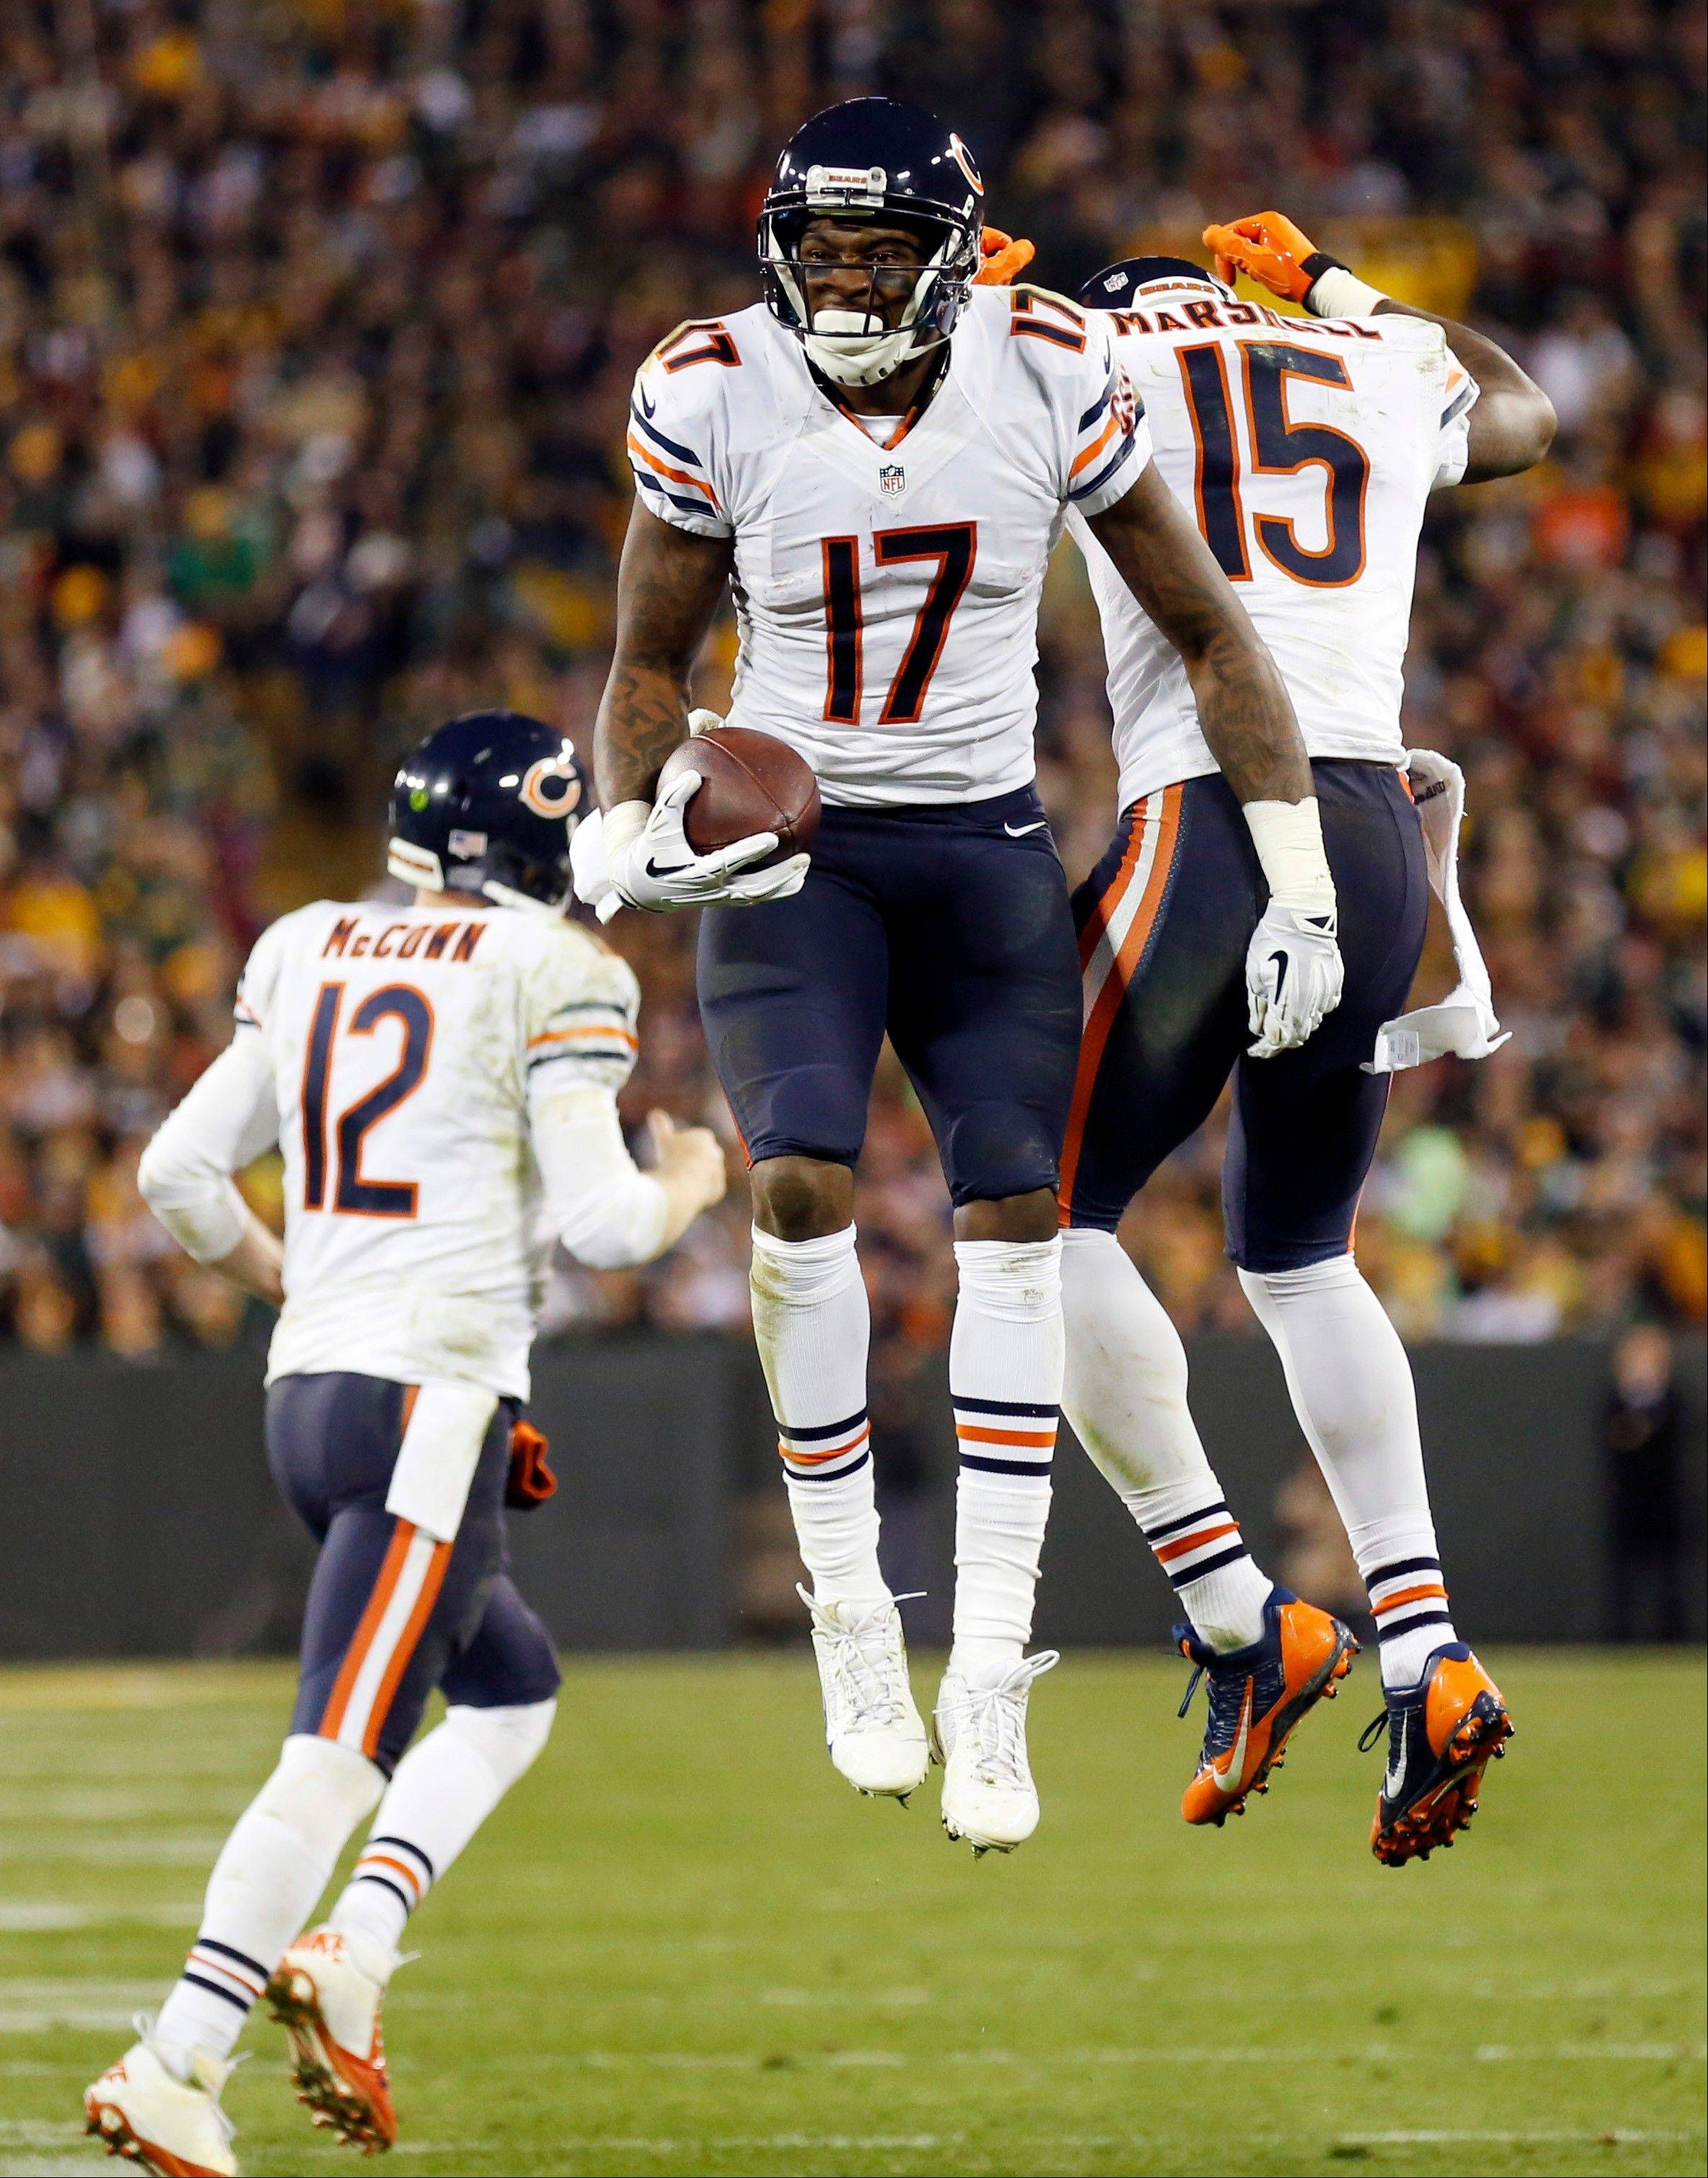 Chicago Bears' Brandon Marshall (15) celebrates one of his touchdown catches with teammates Alshon Jeffery (17) and Josh McCown (12) during the second half.